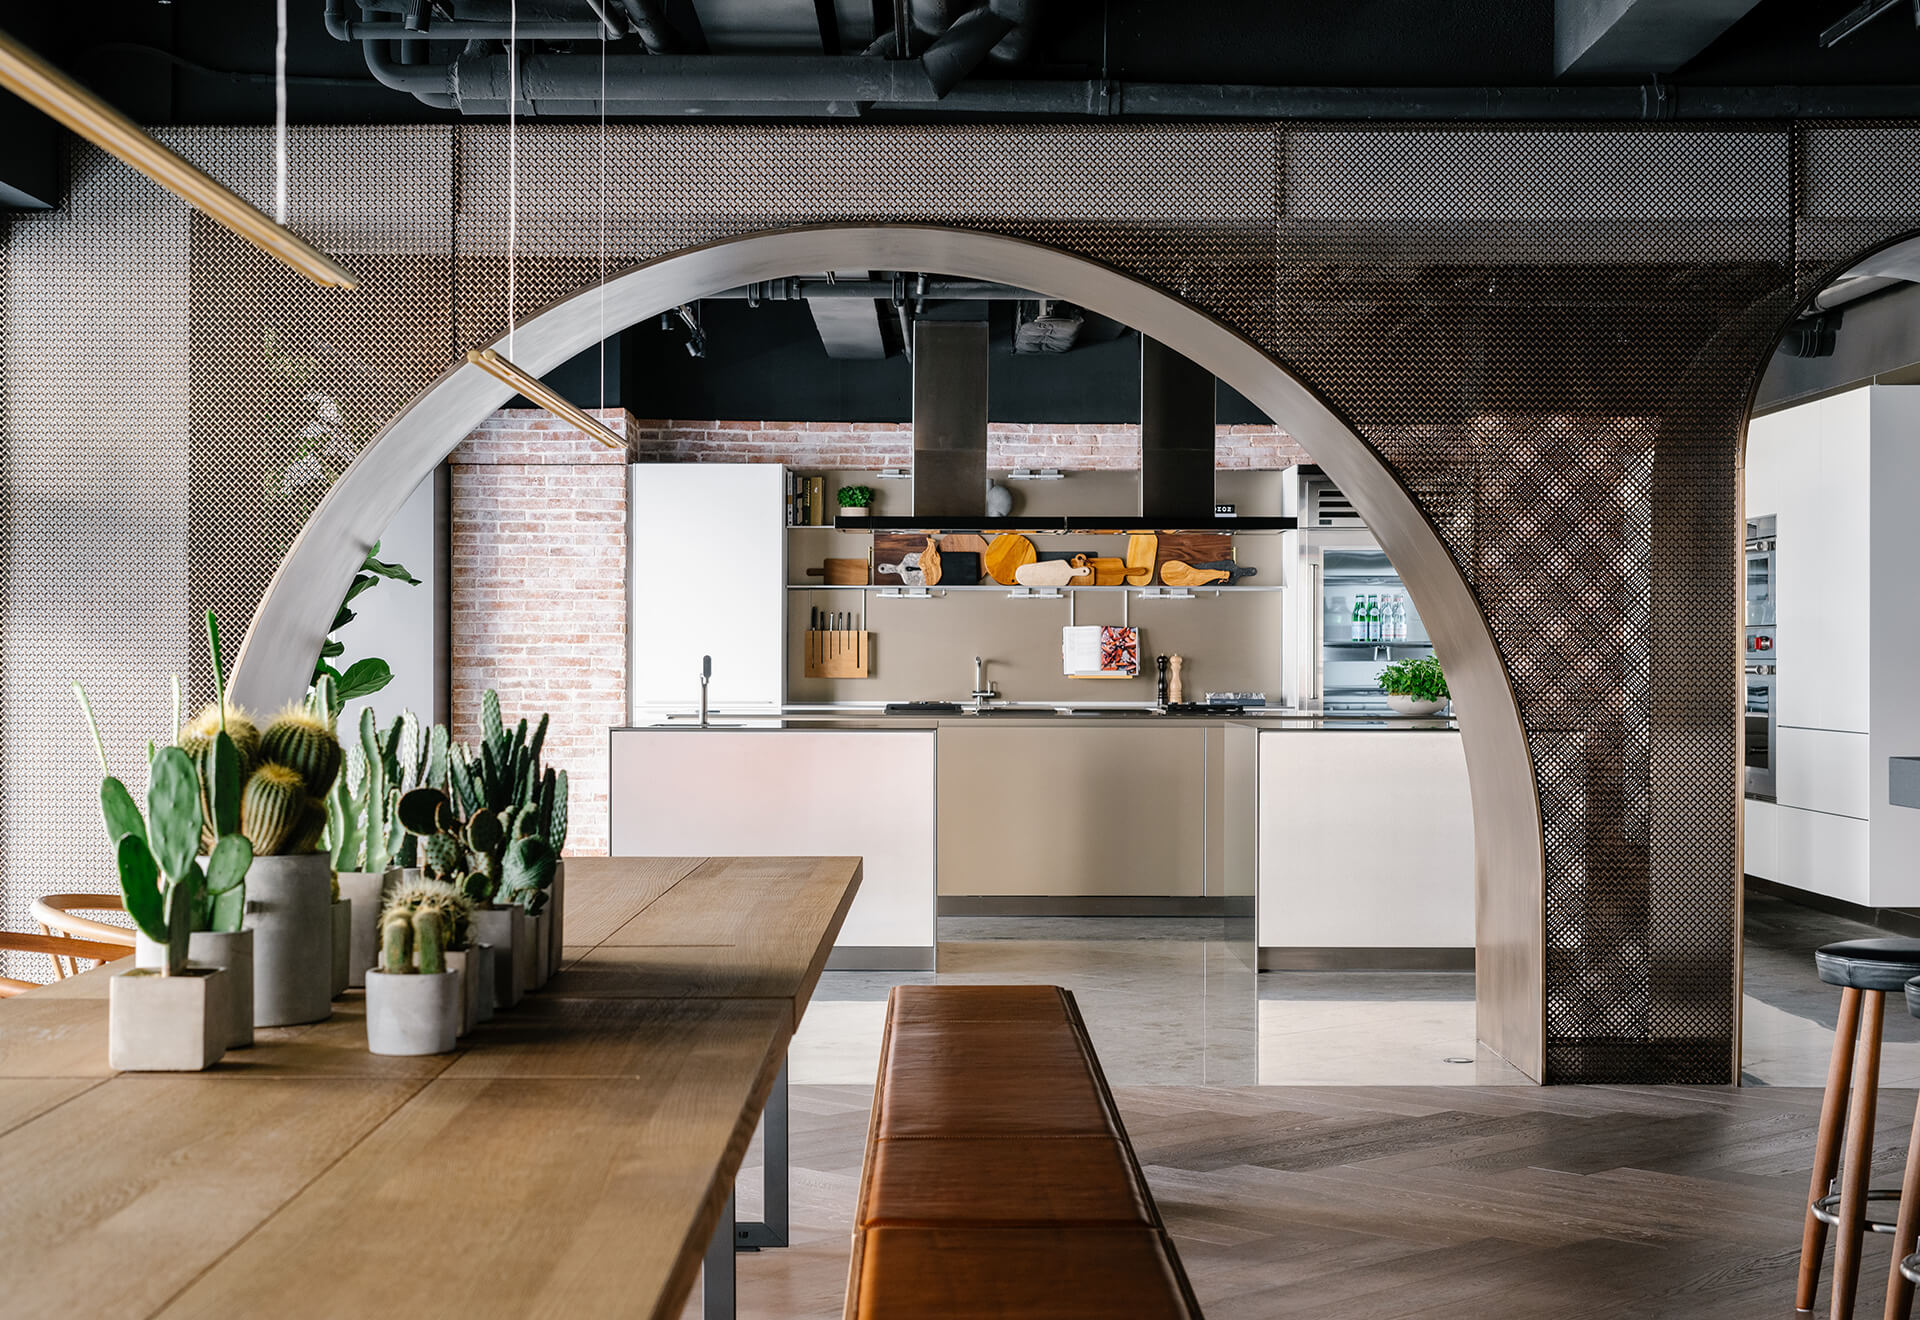 Meraki Kitchen seen from The Kokoro room bar and dining space | House of Madison designed by via. | STIRworld